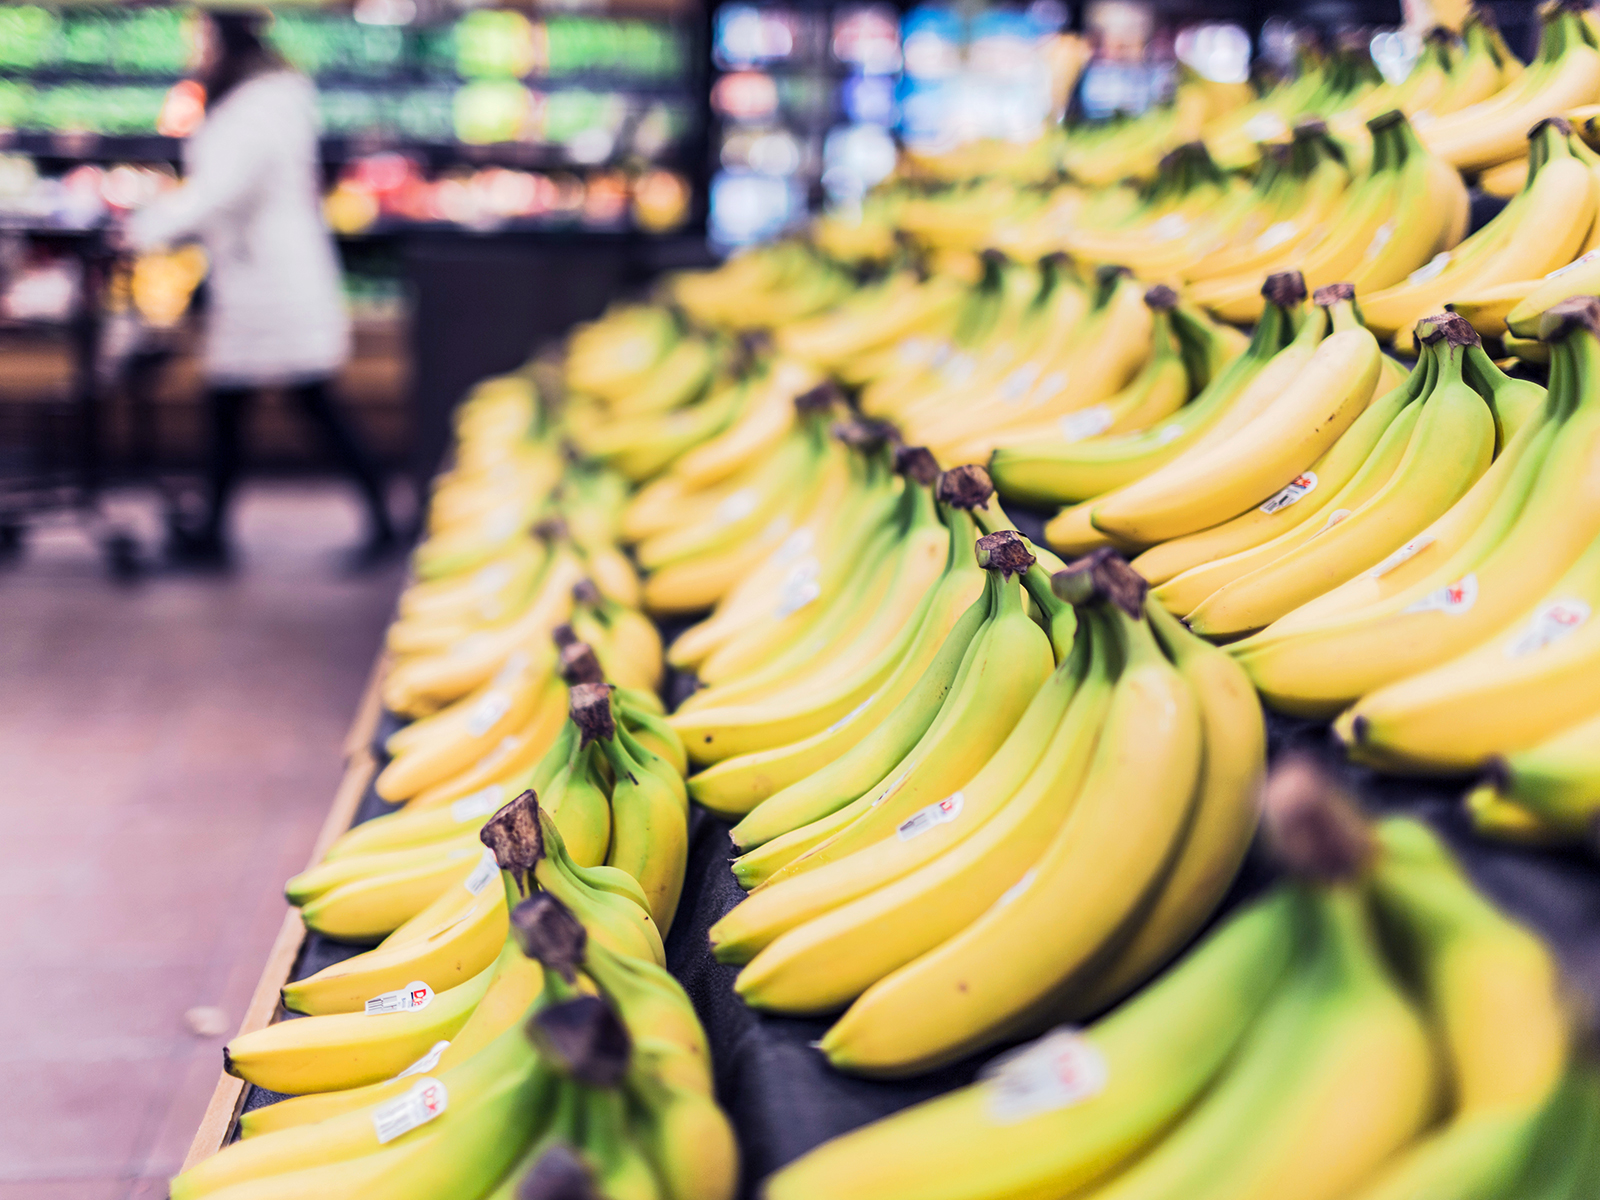 Banana Are the Biggest Source of Grocery Store Waste, Says Study